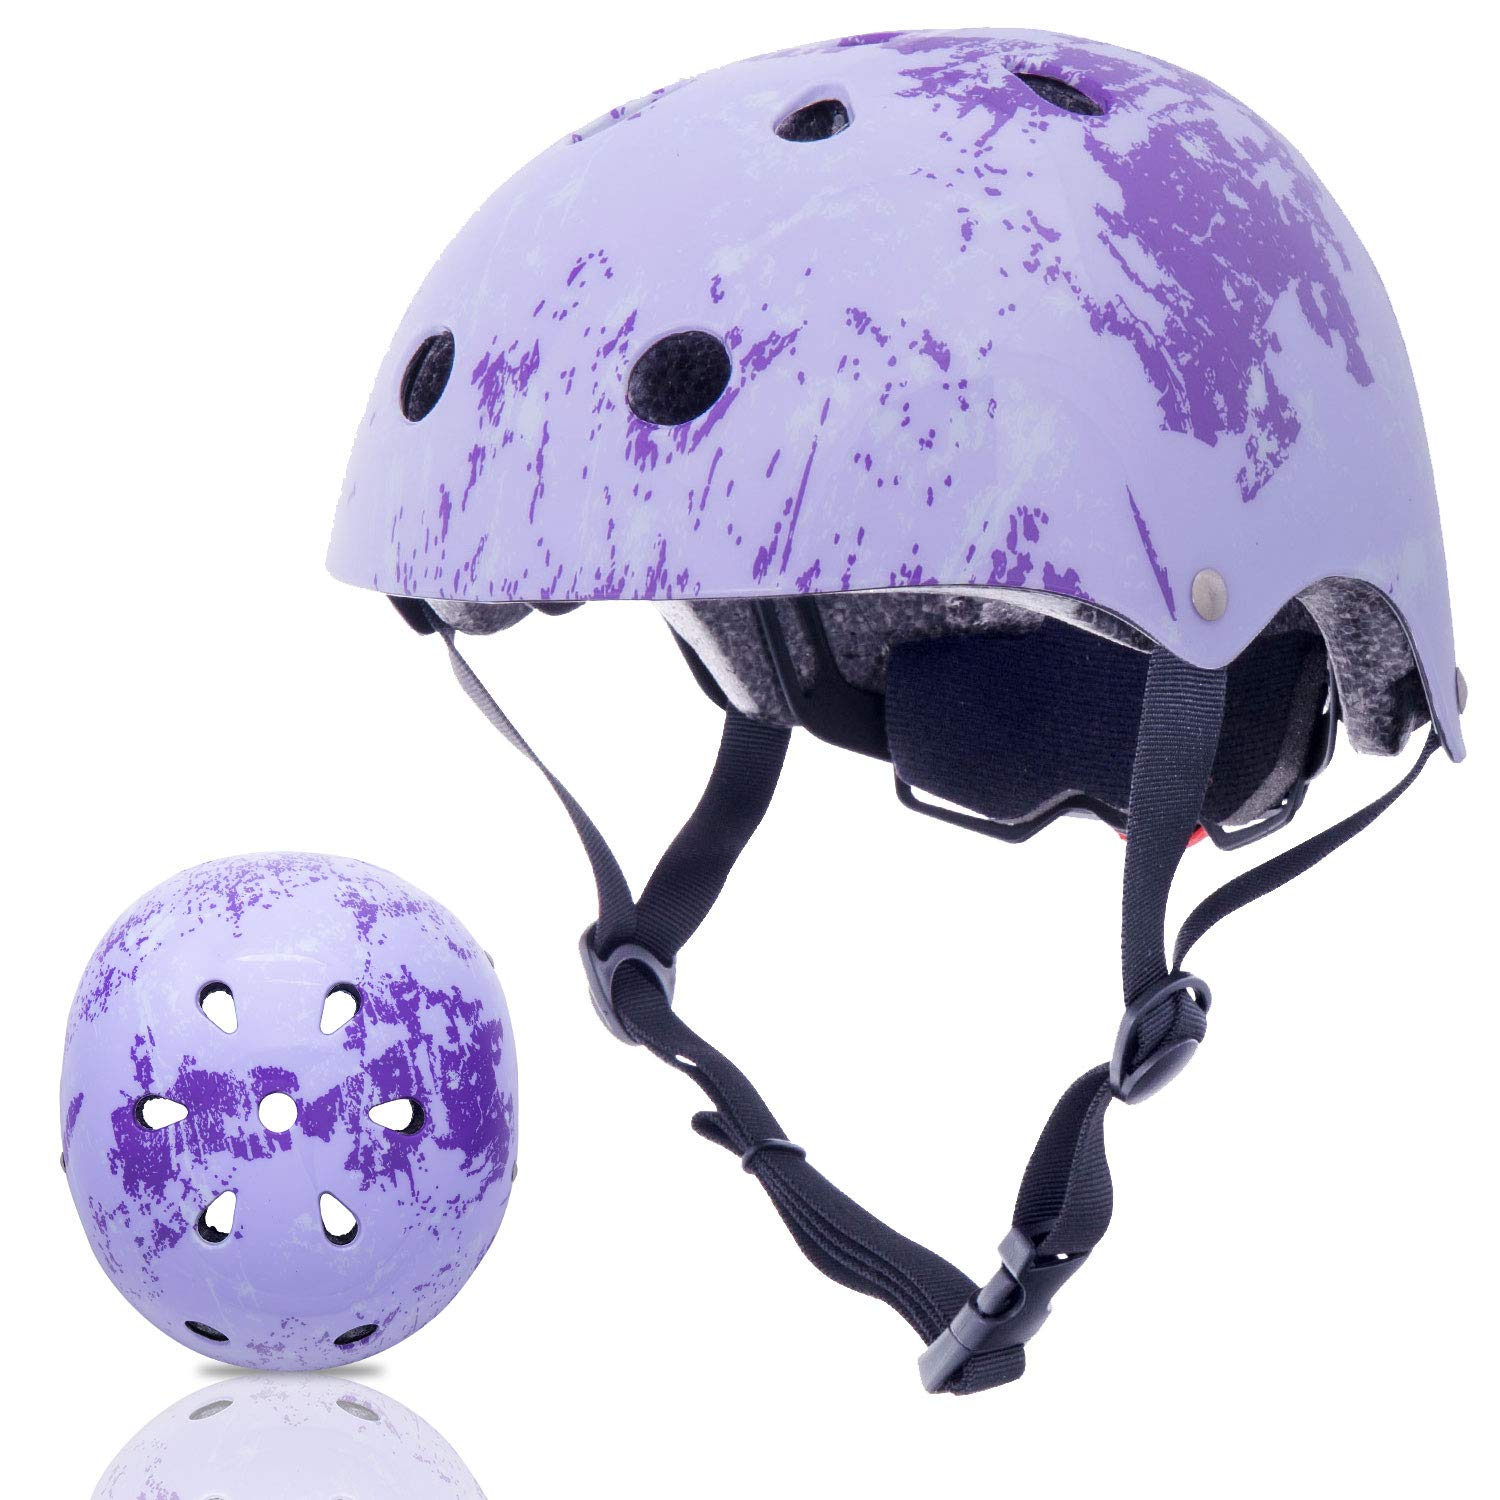 Exclusky Kids Bike Helmet, 3-8 Years Boys Girls Safety Helmets for Multi-Sports Cycle Skating Scooter – CPSC Certified